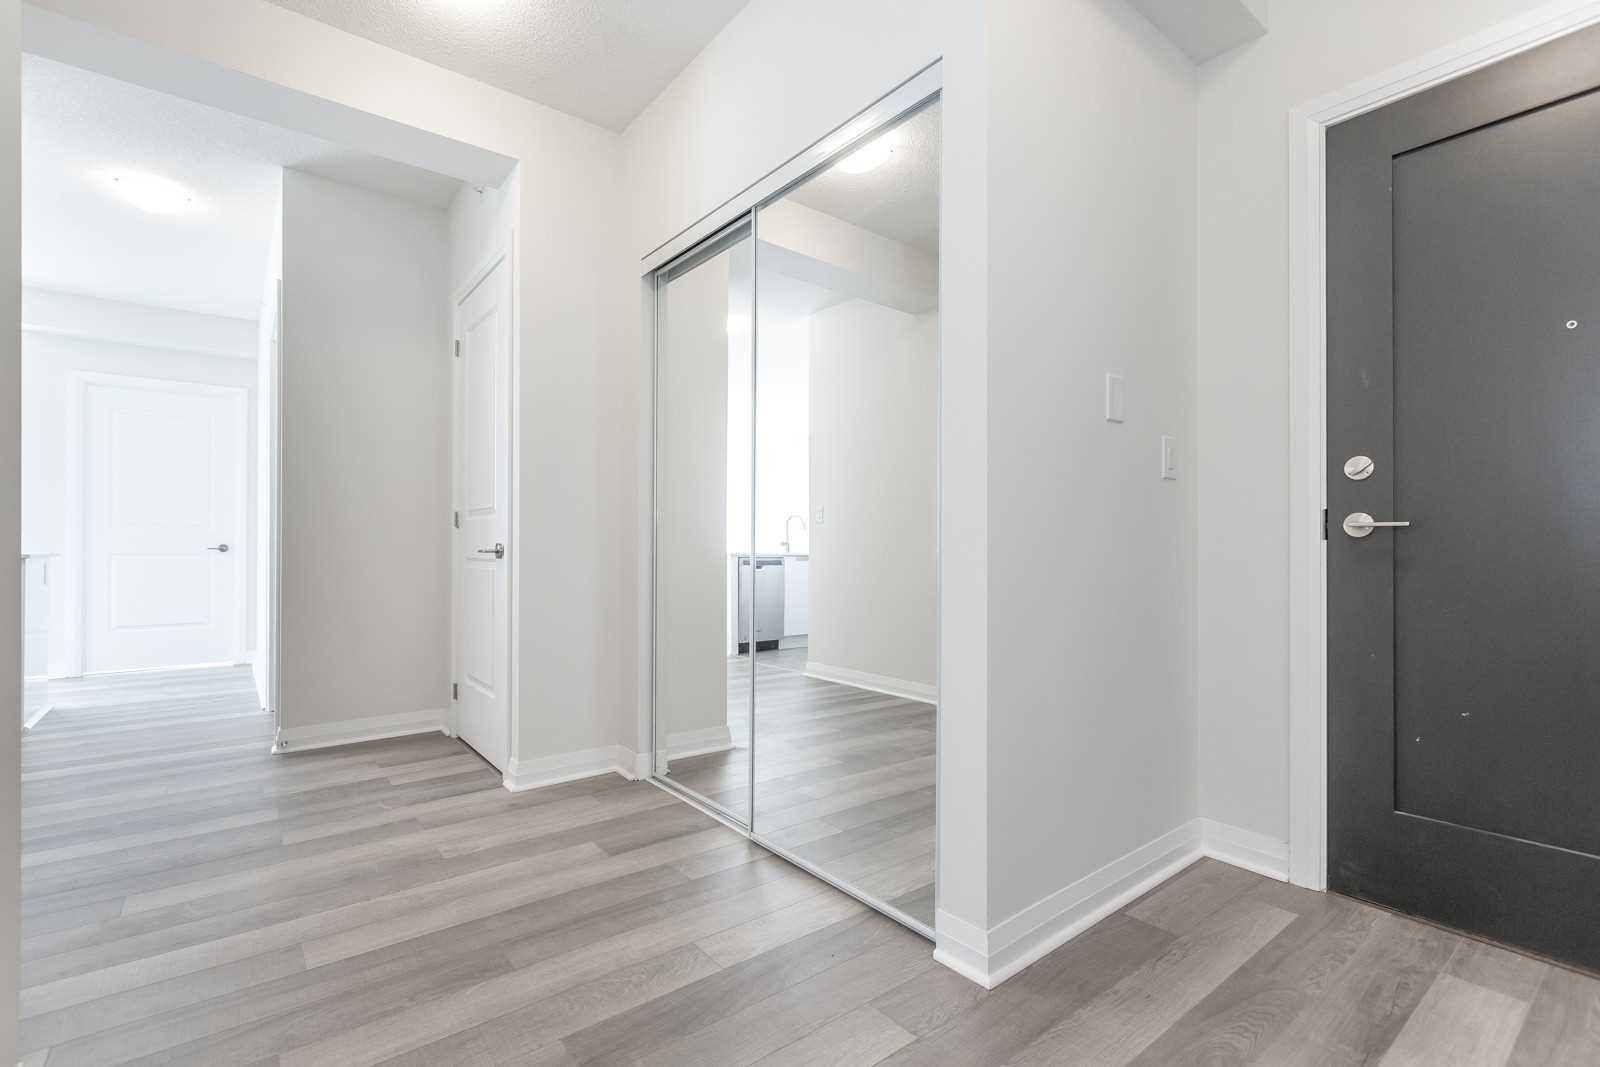 Photo 2: Photos: 1204 5025 Four Springs Avenue in Mississauga: Hurontario Condo for lease : MLS®# W4582092